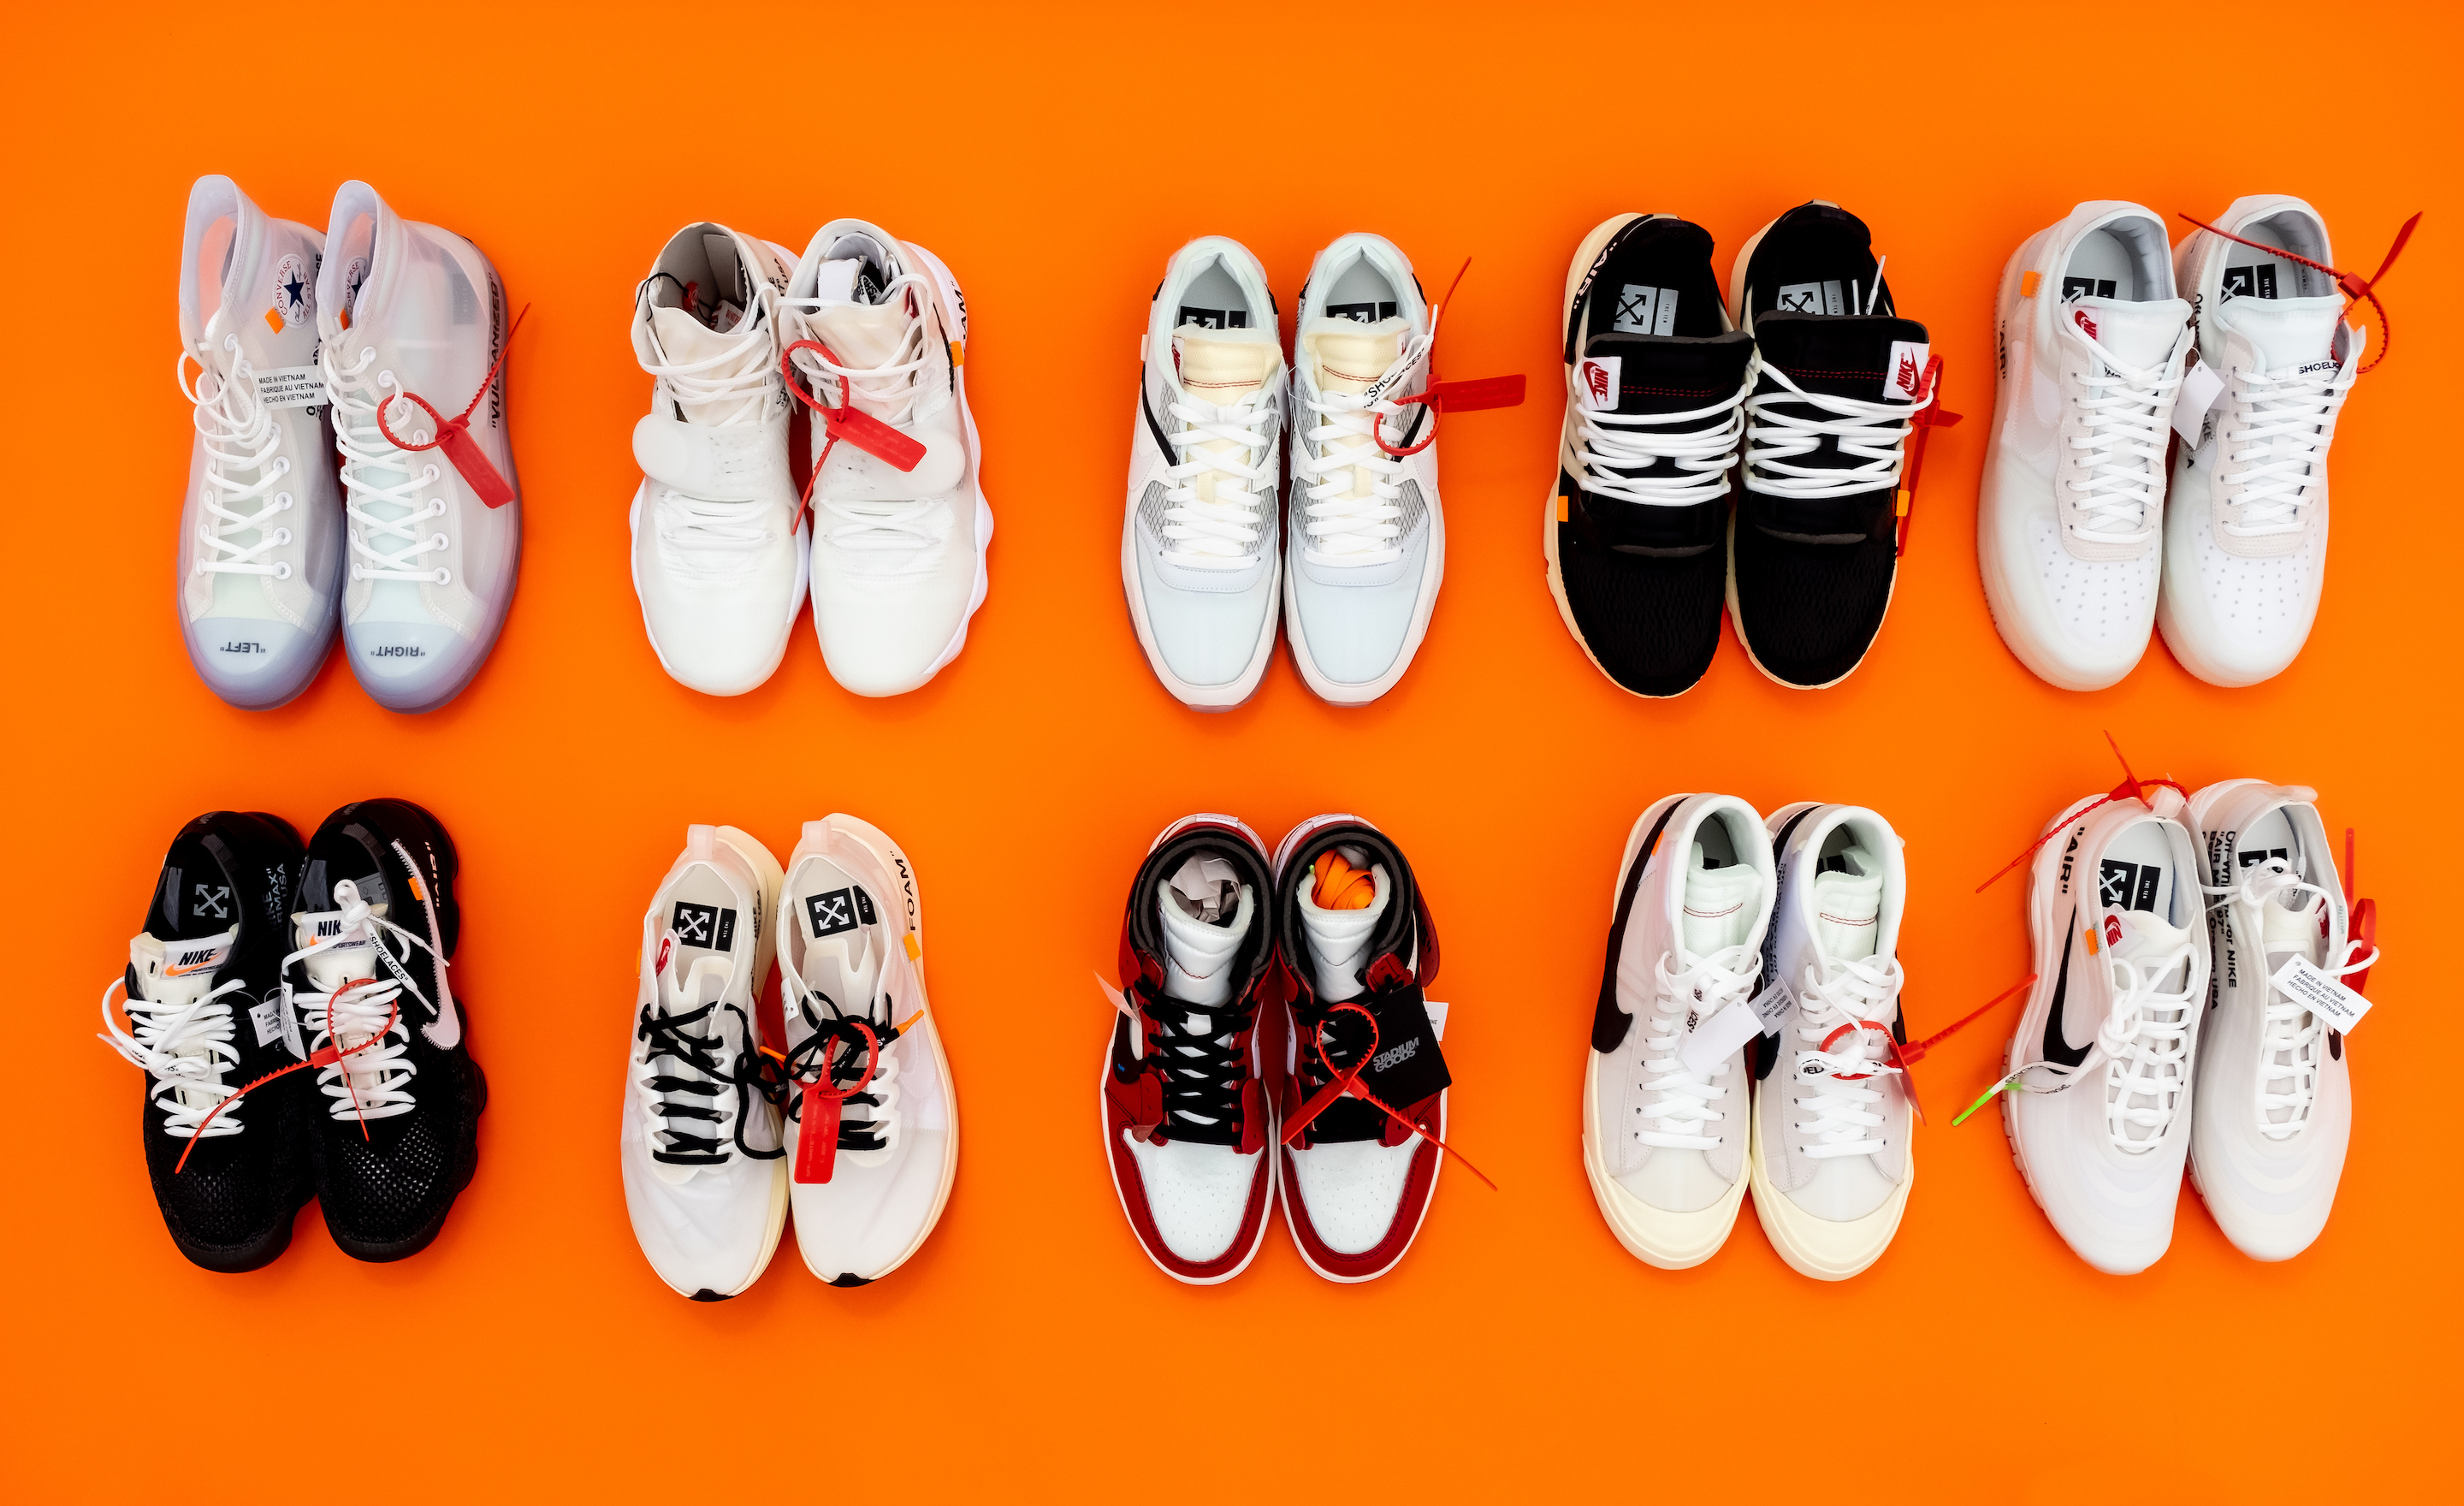 The Ten by Nike X Off-White